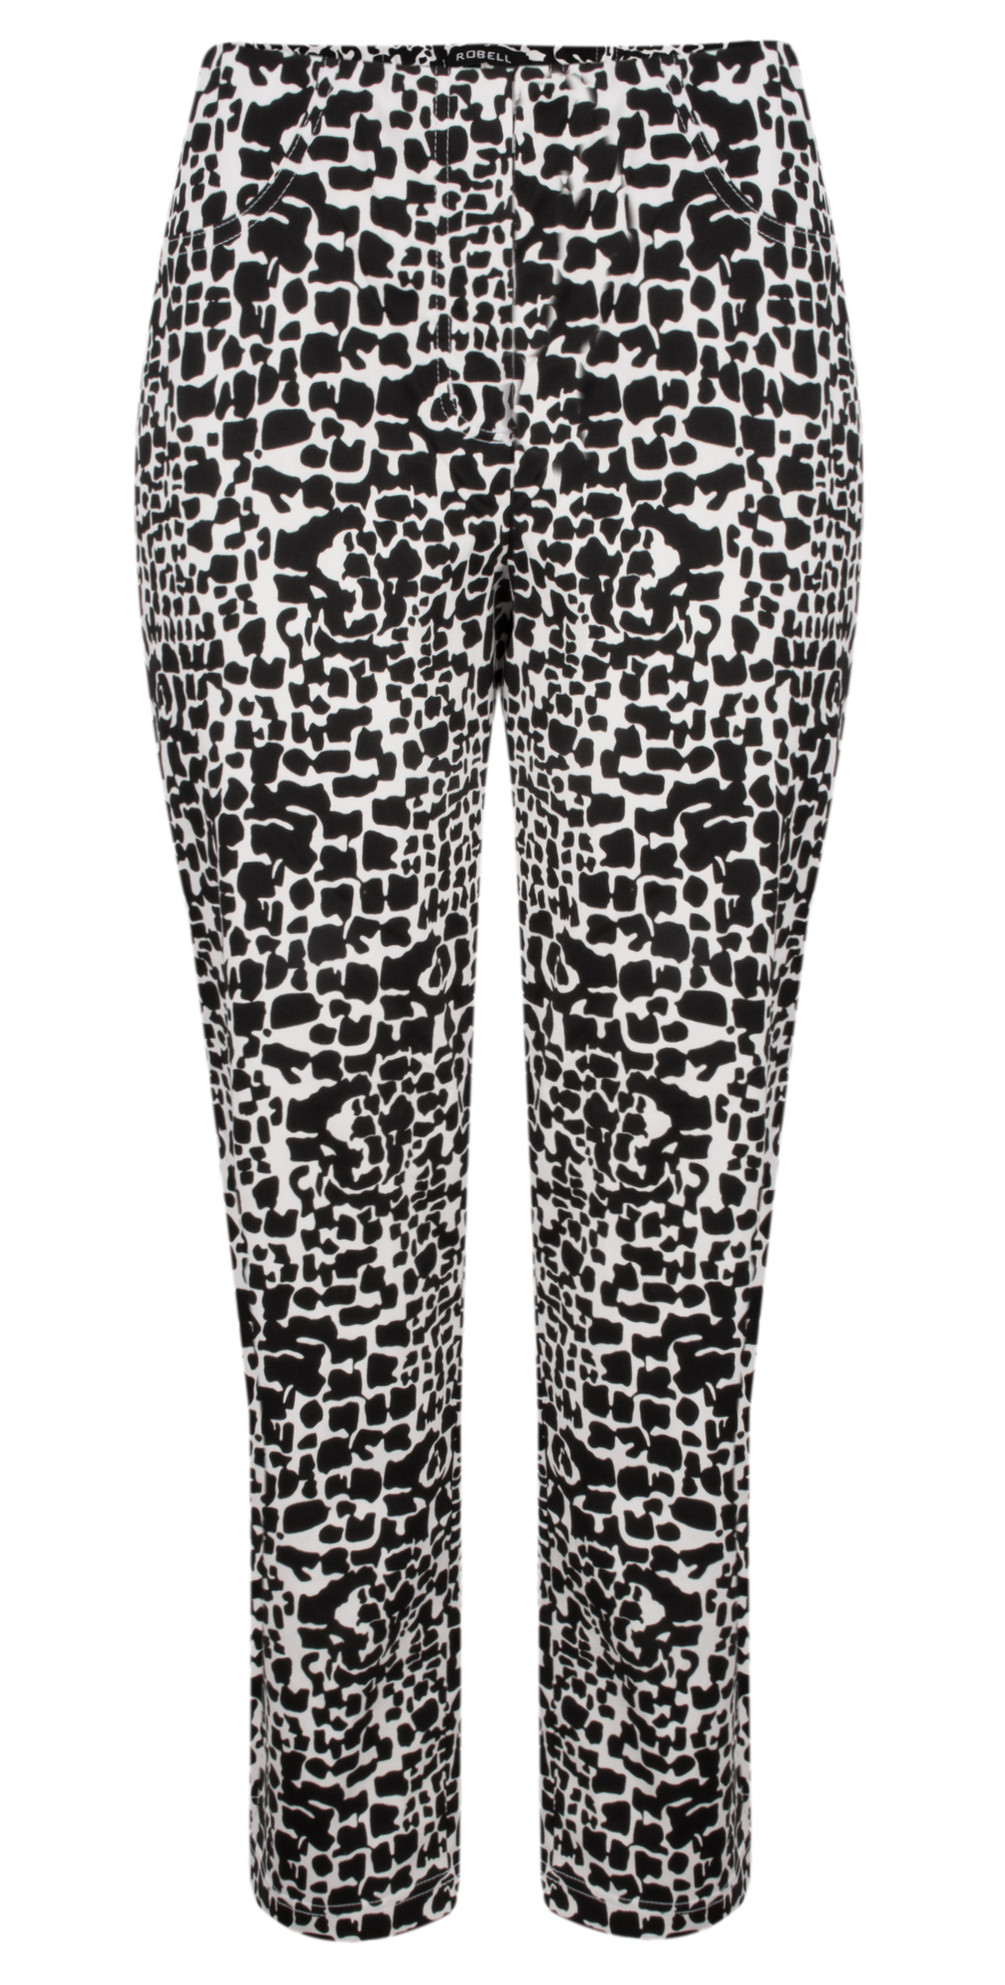 Bella 7/8 Animal Print Trousers main image